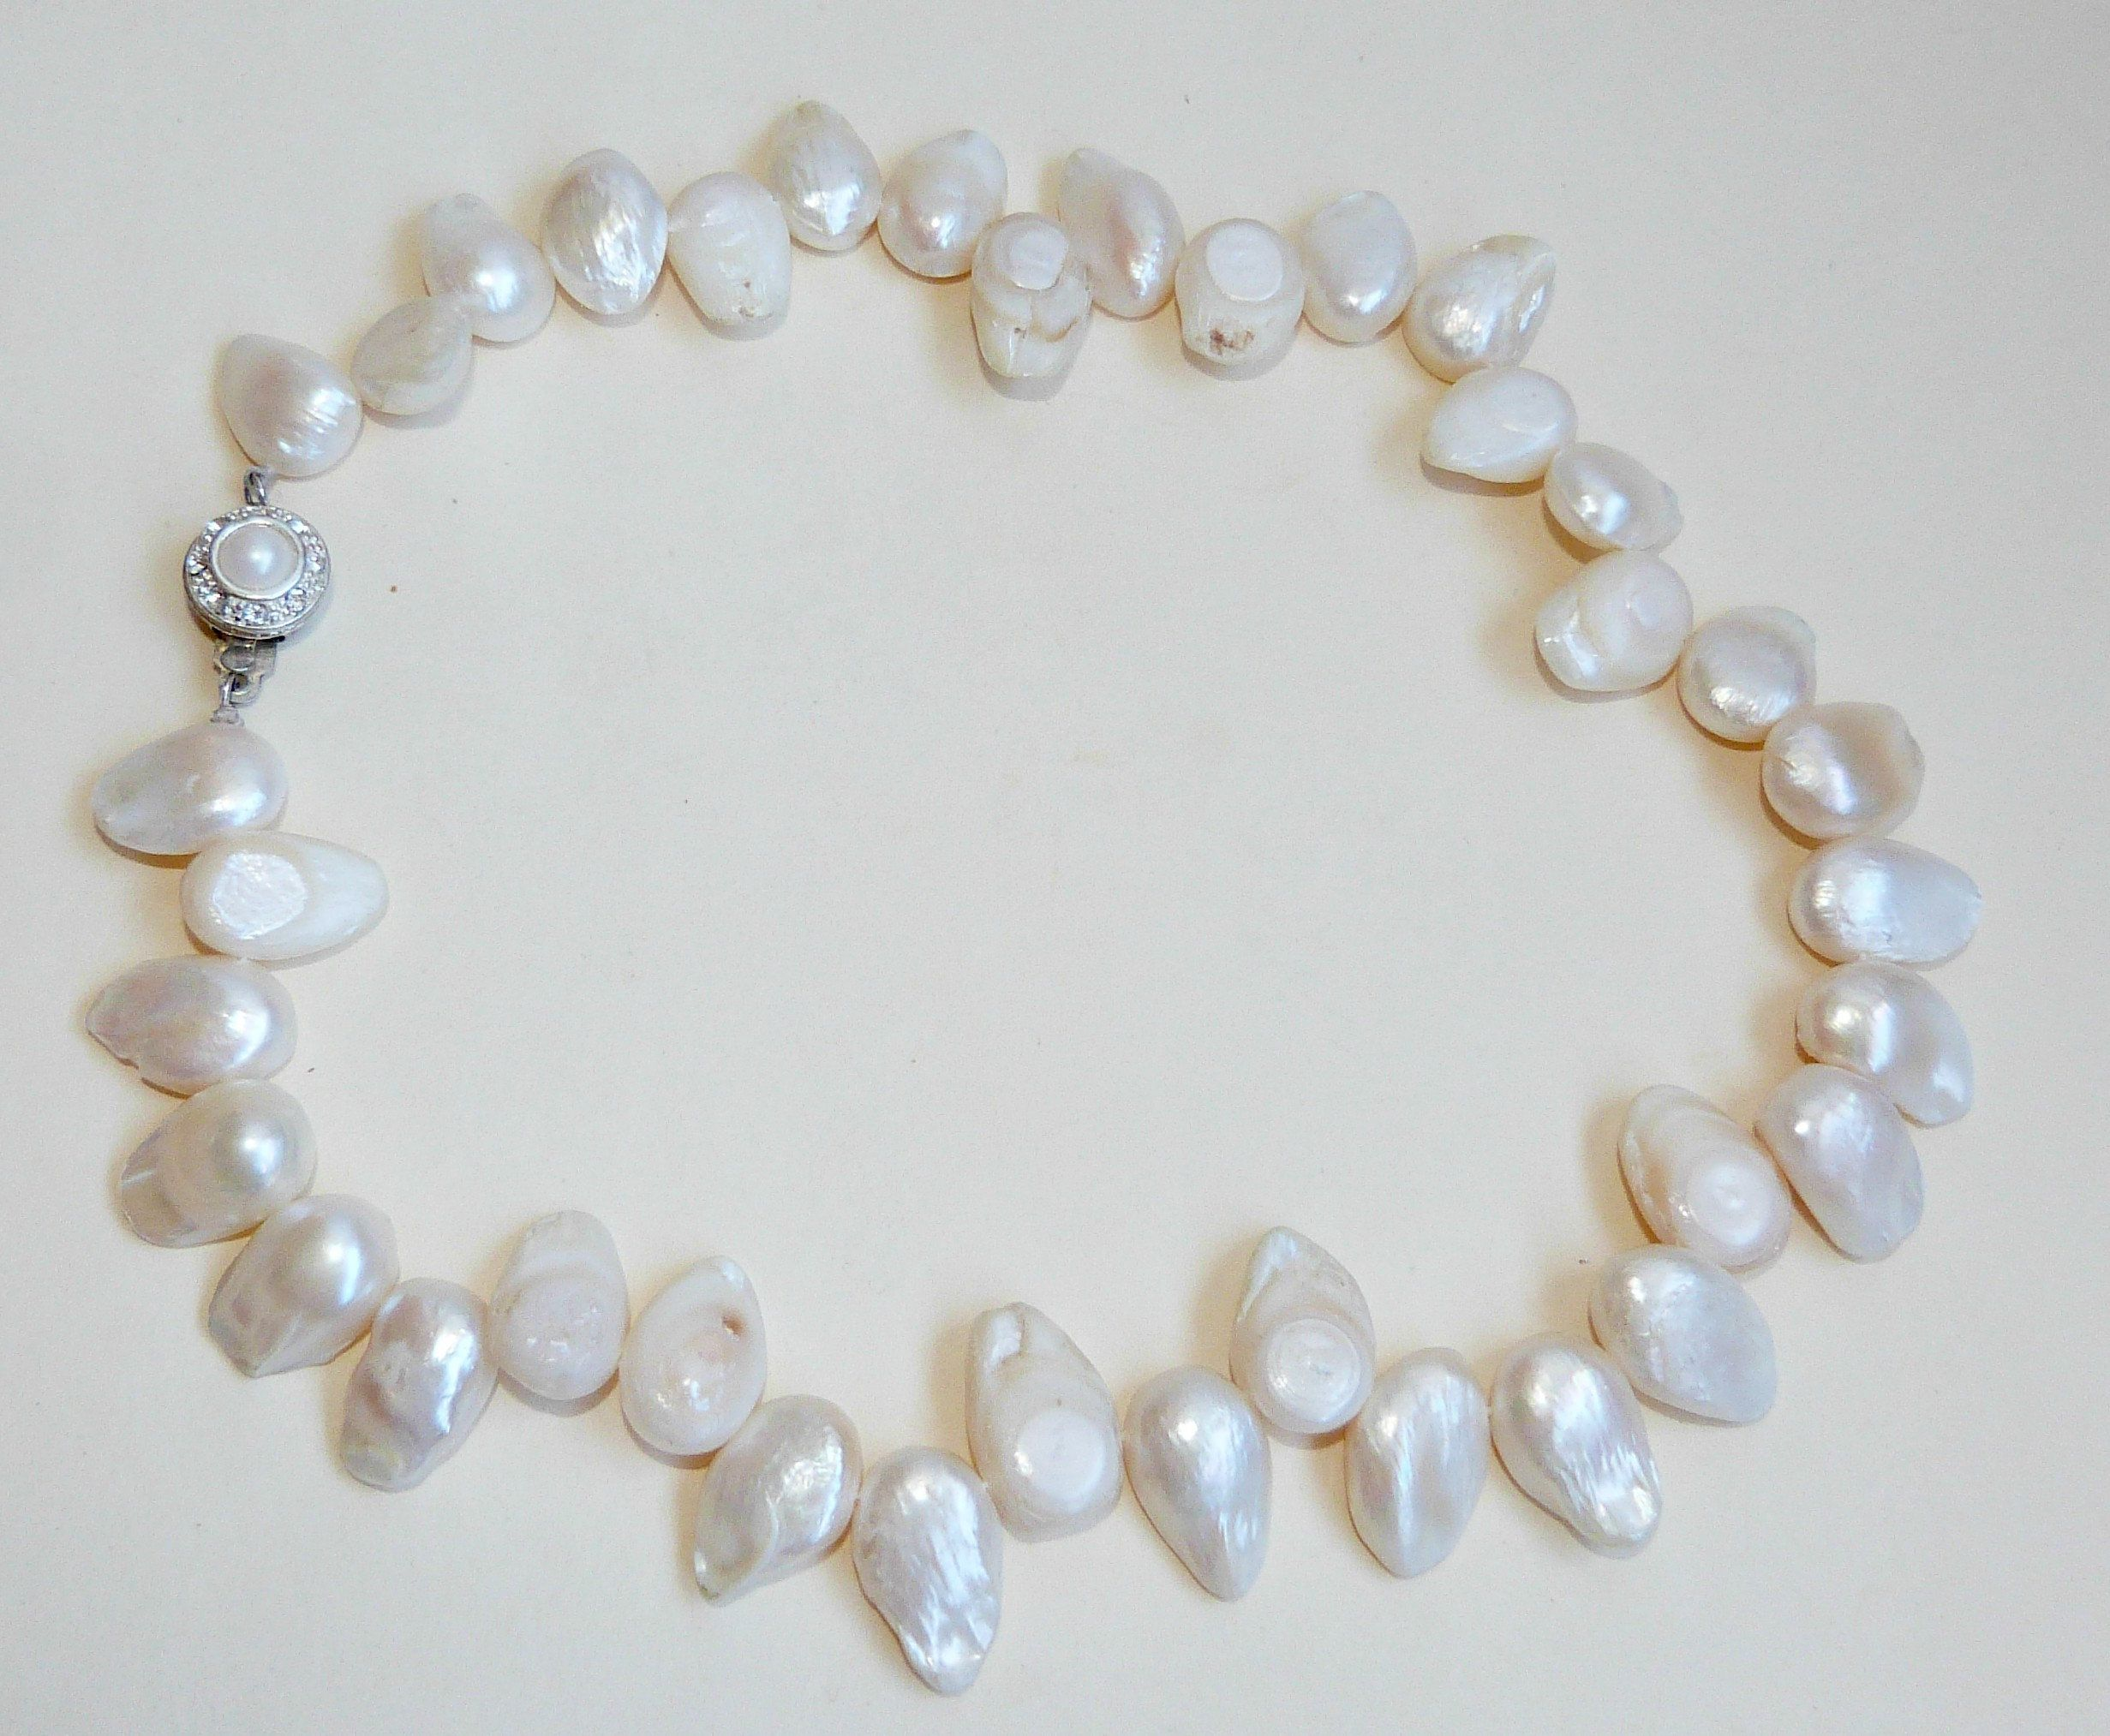 Czech Vintage Baroque Pearl Glass Beads-CHOOSE YOUR COLORS!